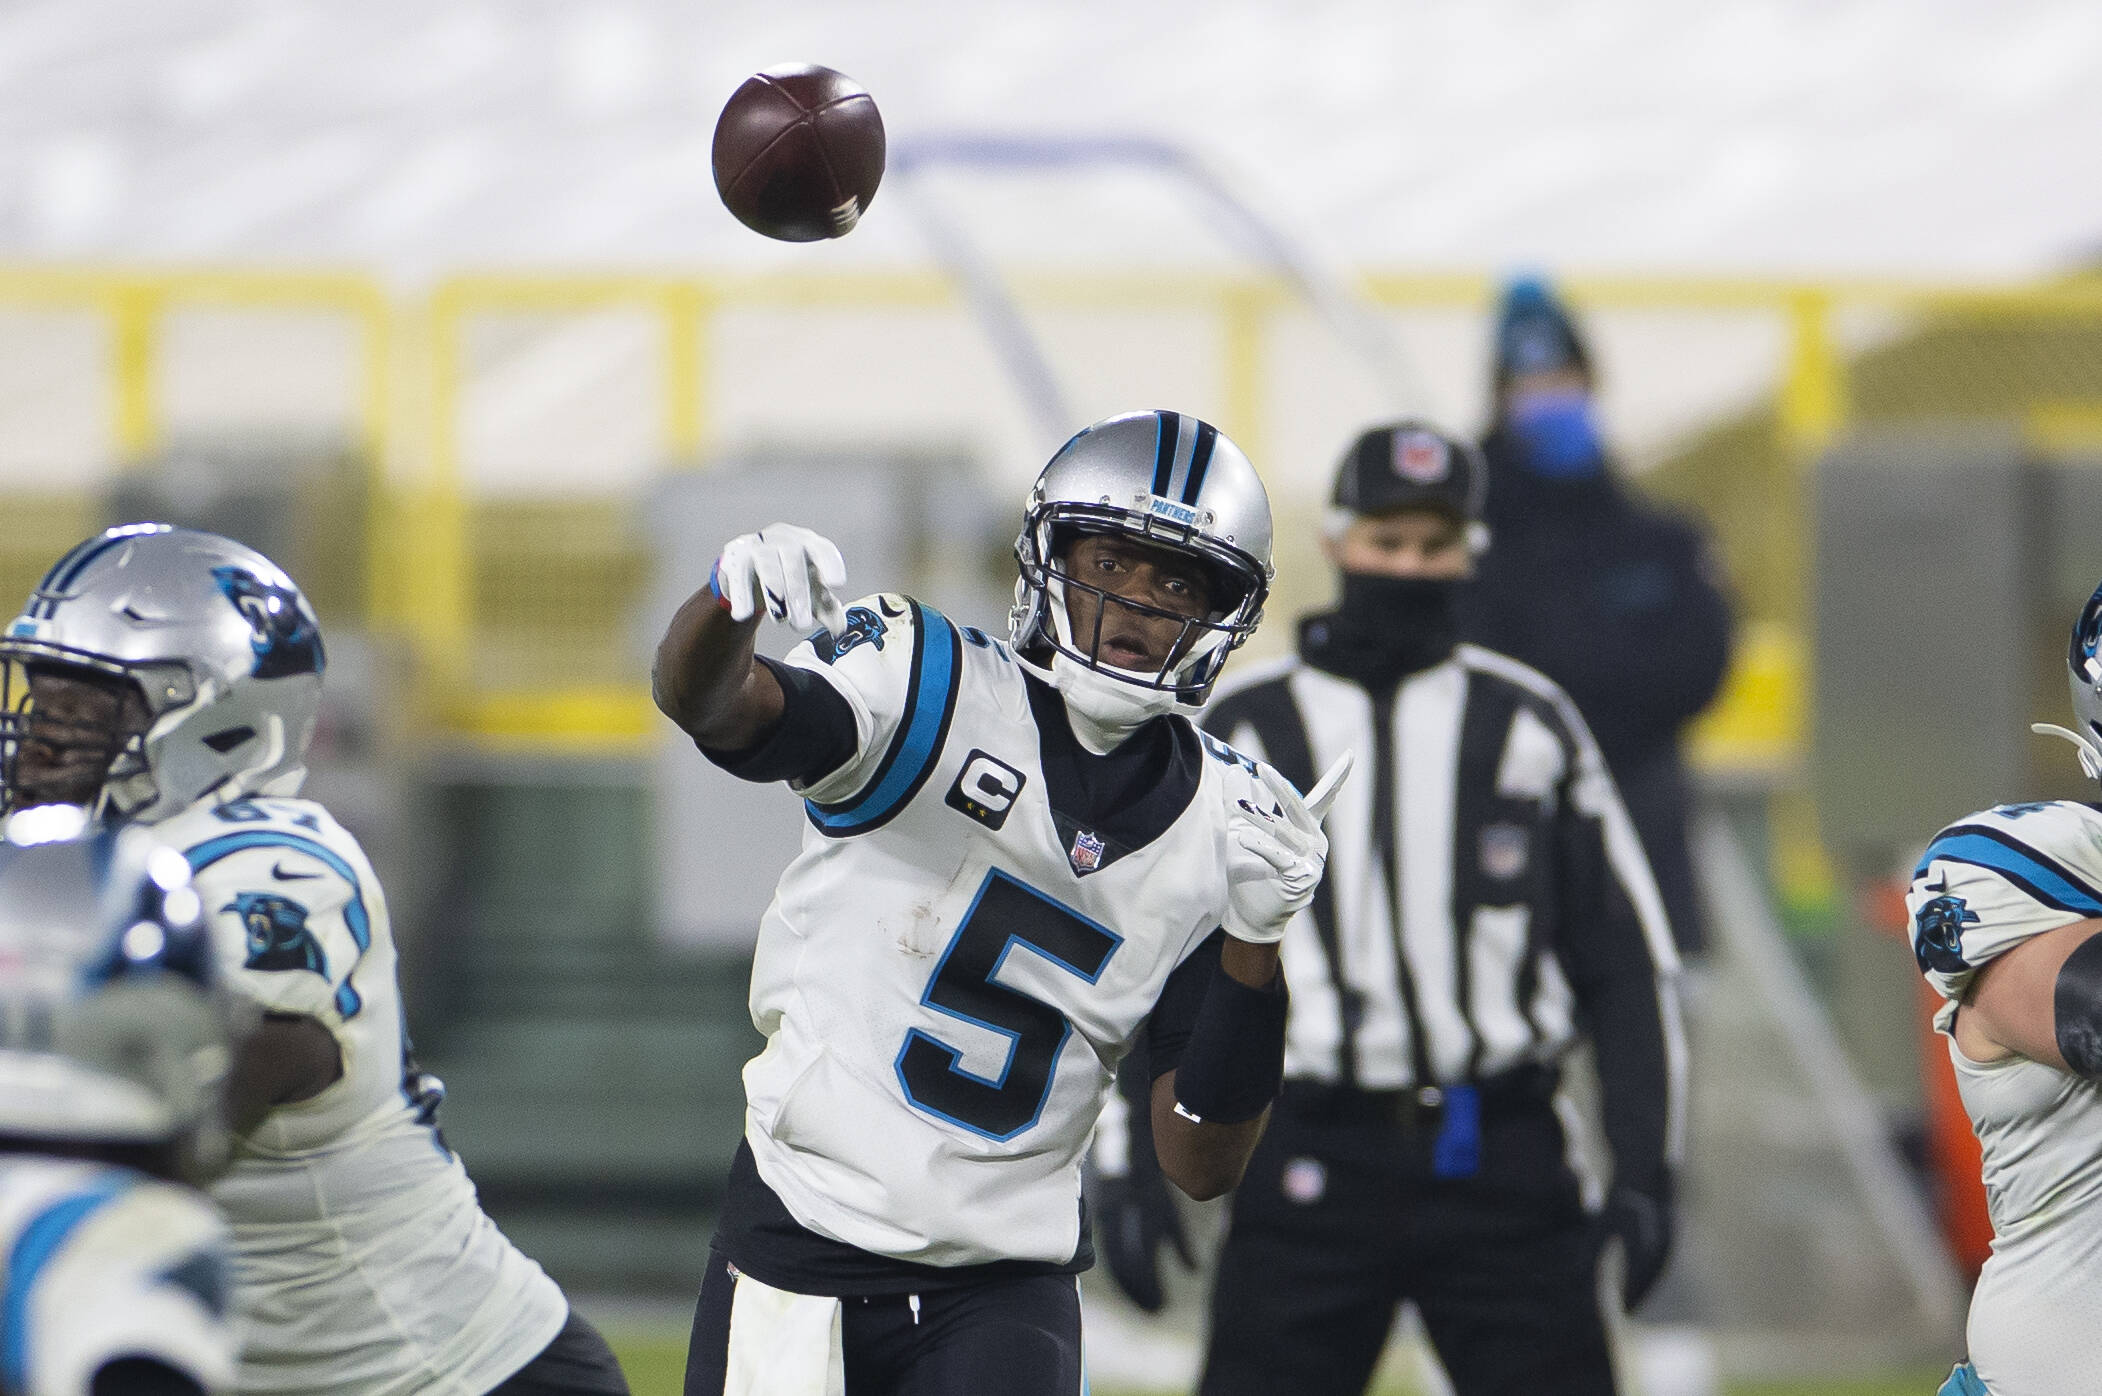 December 19, 2020: Carolina Panthers quarterback Teddy Bridgewater 5 throws a pass during the NFL, American Football Her